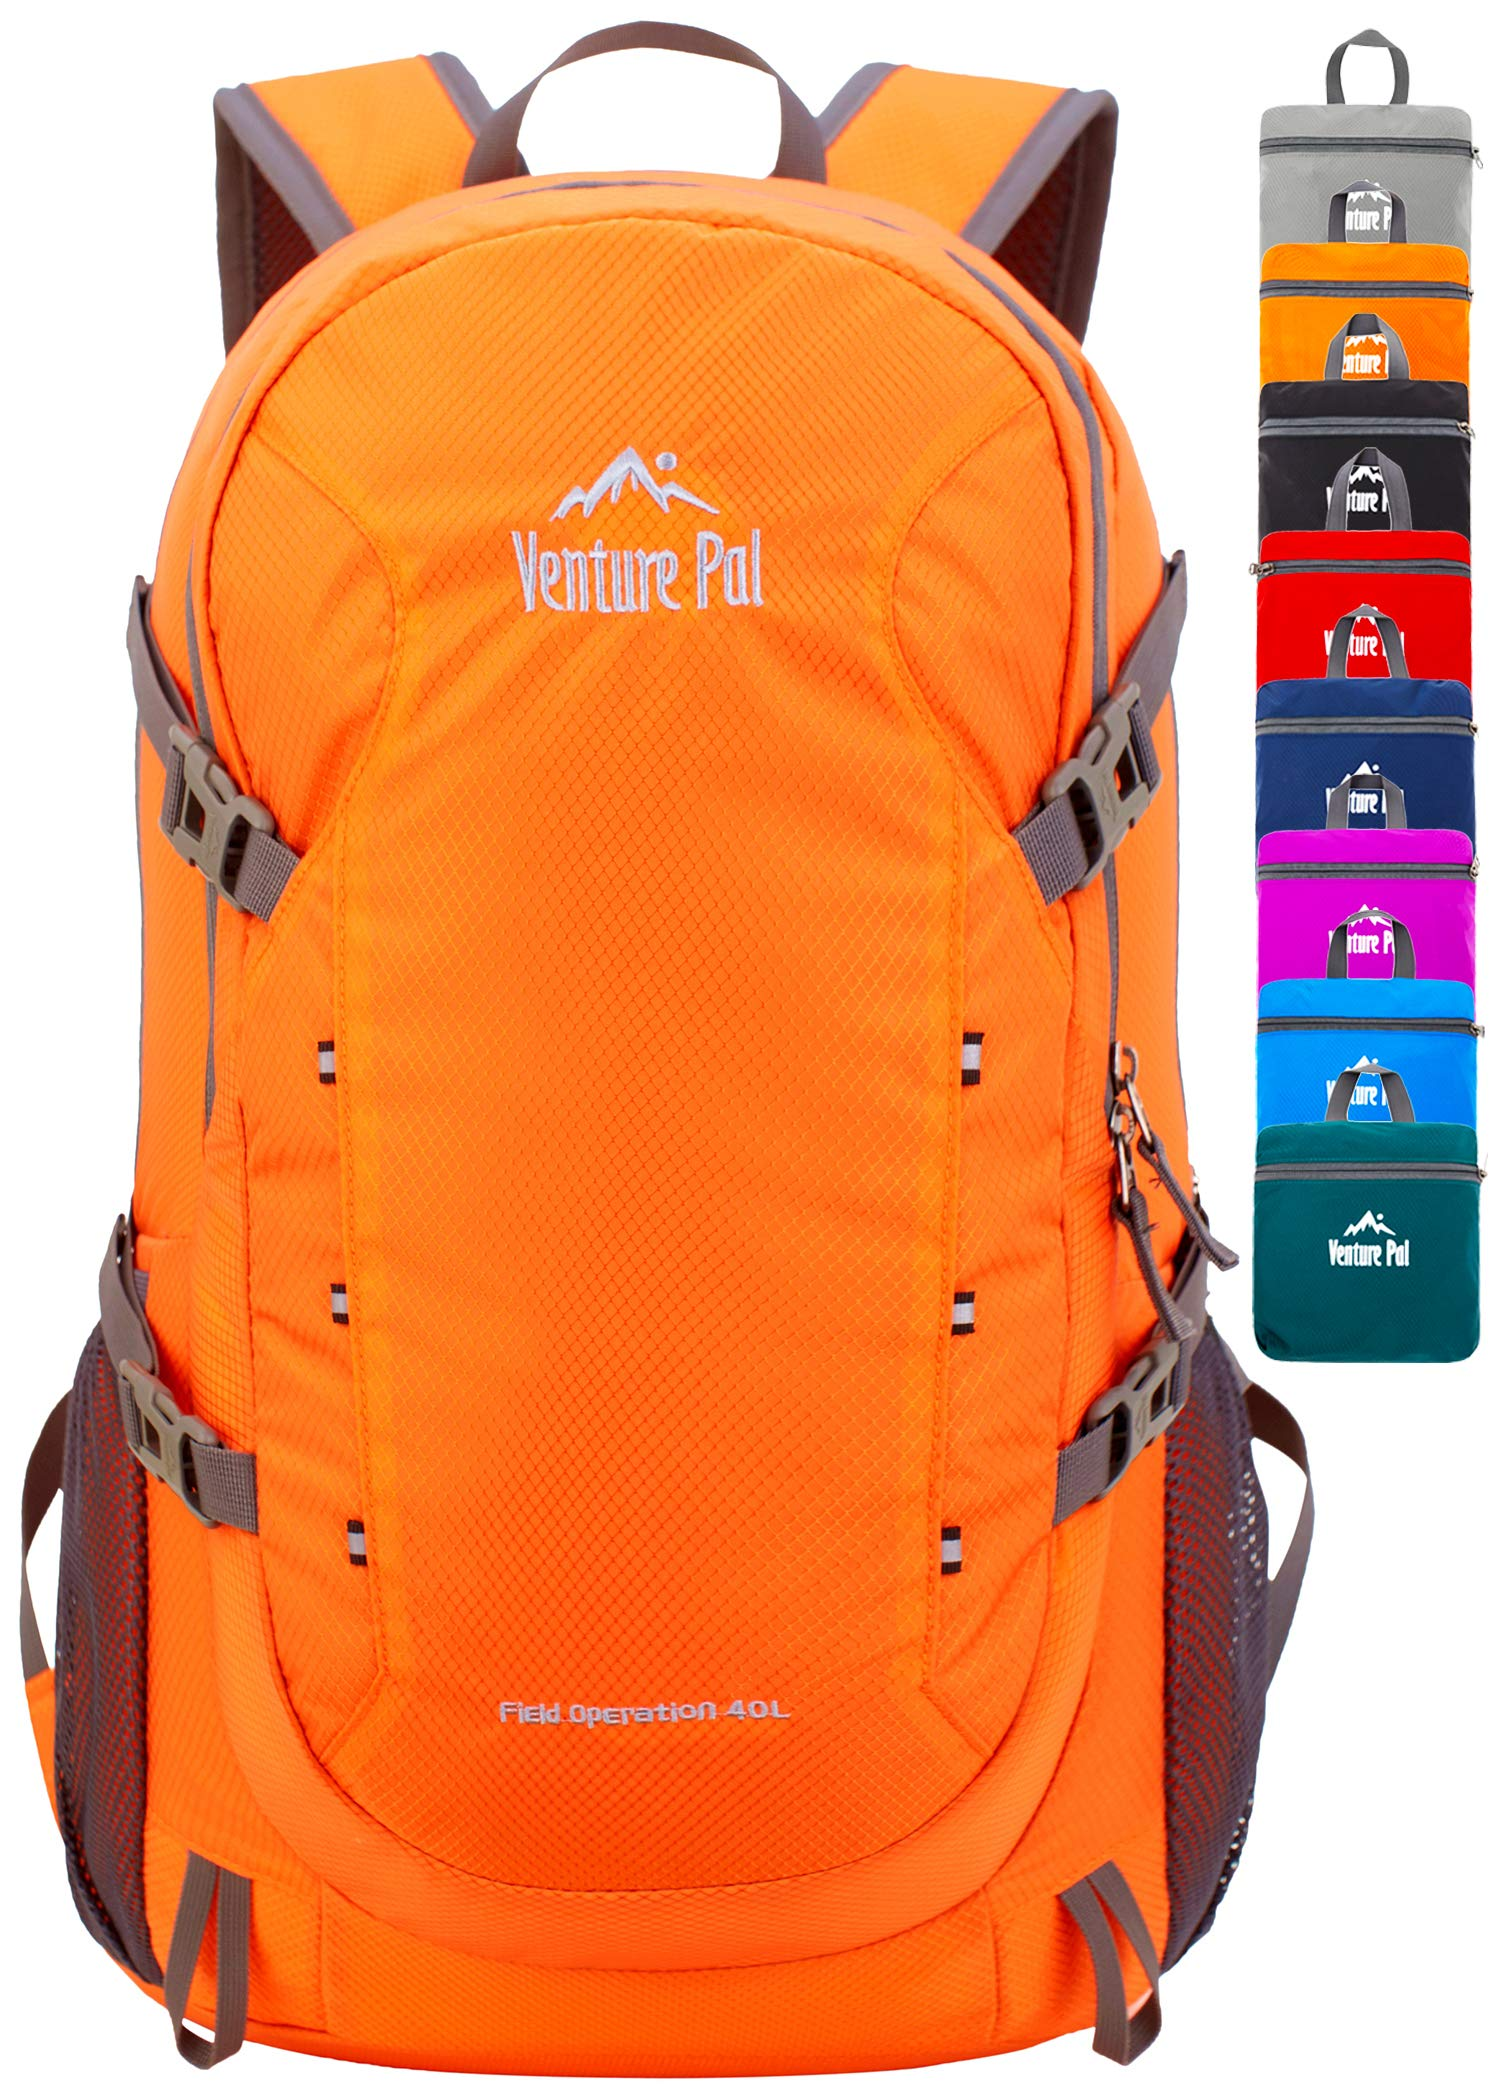 Venture Pal 40L Lightweight Packable Travel Hiking Backpack Daypack by Venture Pal